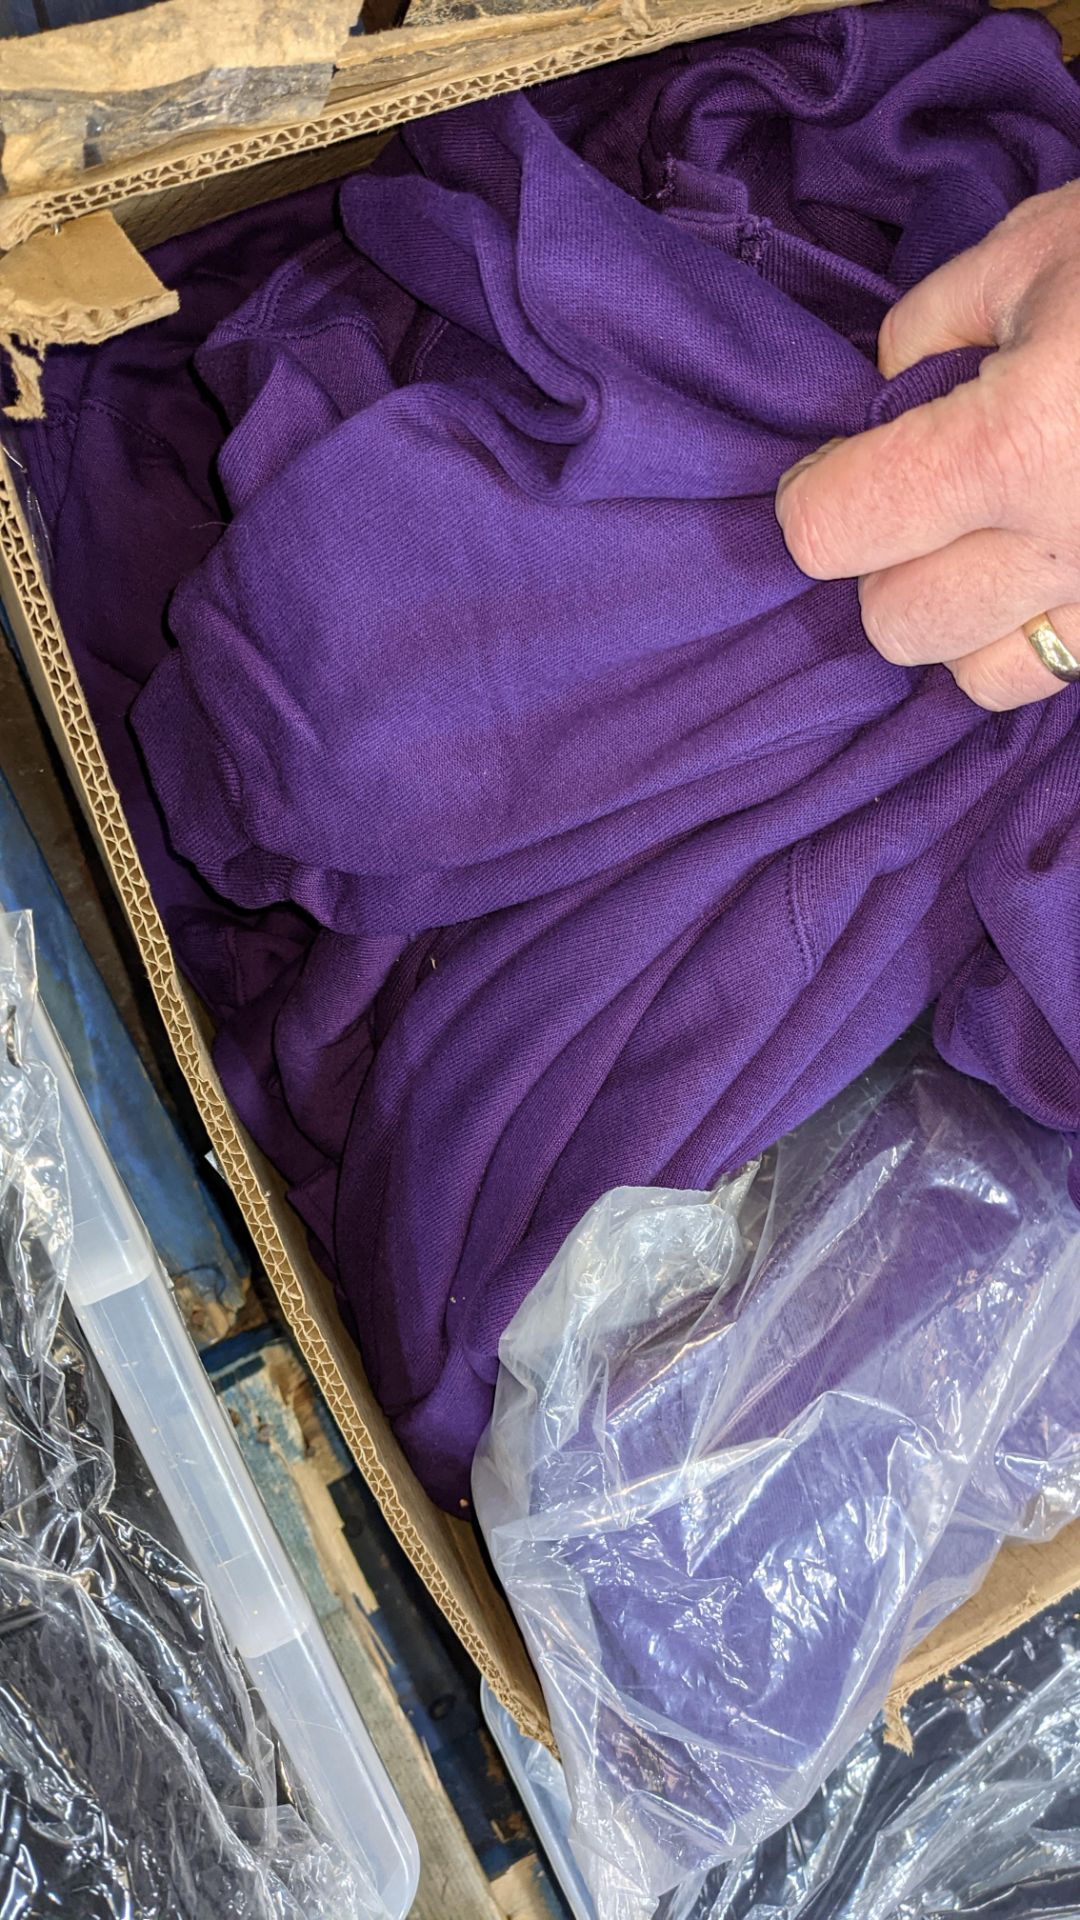 Quantity of Russell children's purple button up sweat tops - 1 large box - Image 4 of 4